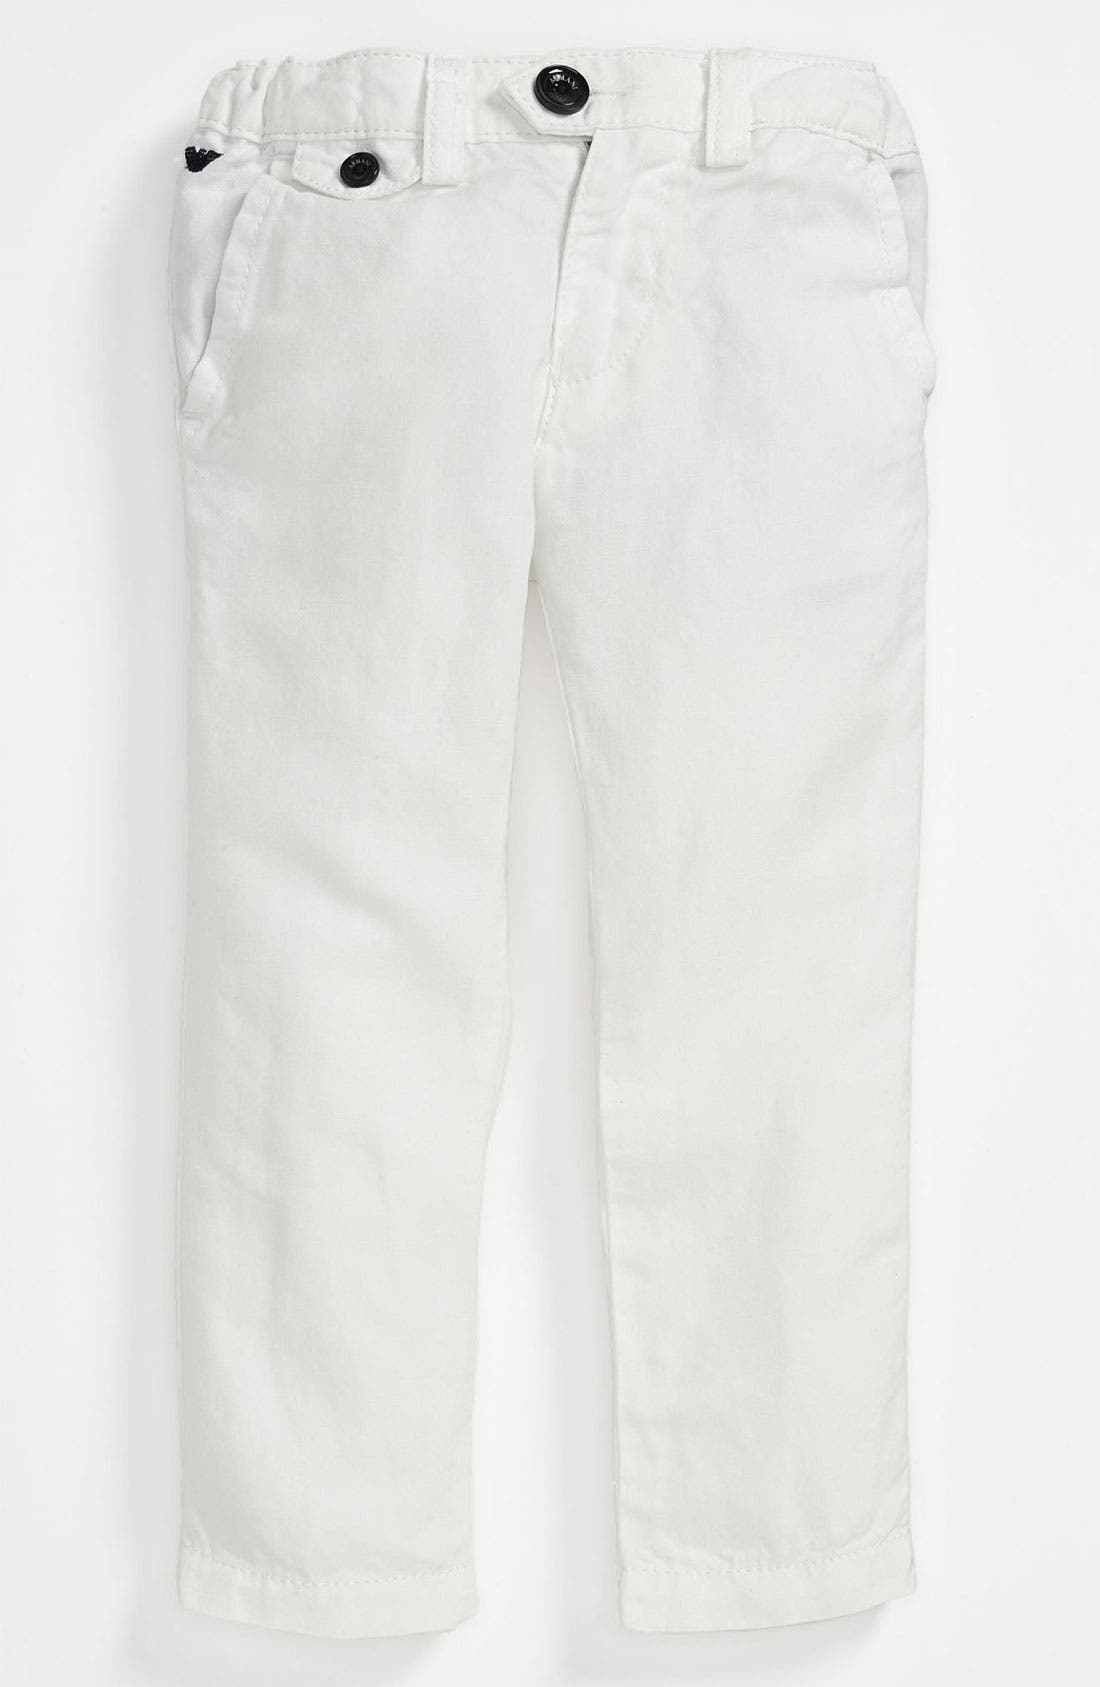 Alternate Image 1 Selected - Armani Junior Pants (Toddler & Little Boys)